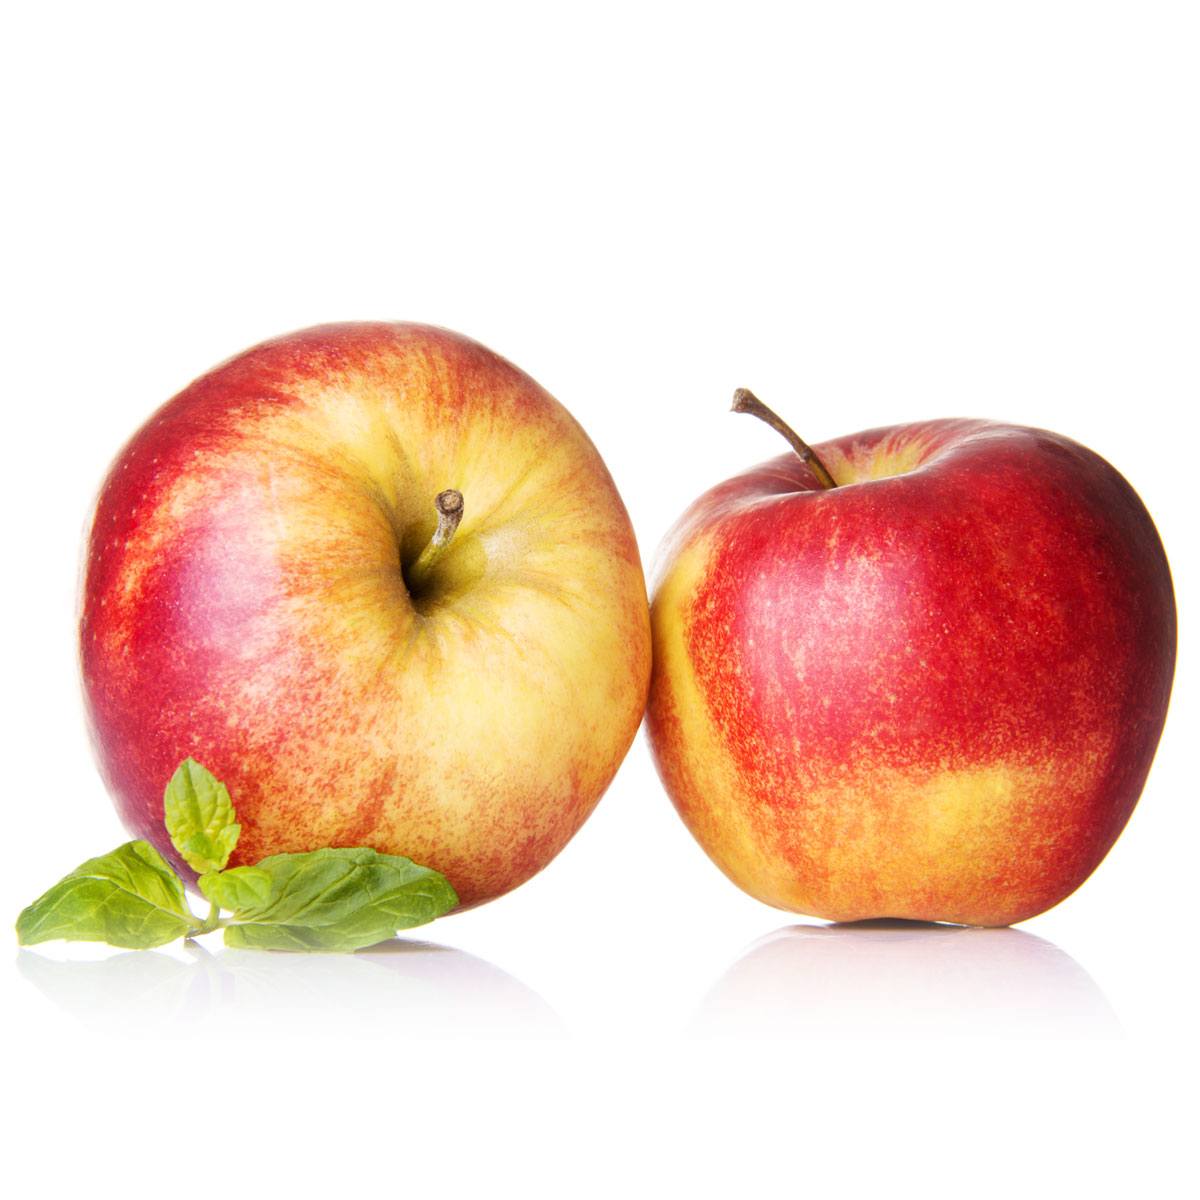 McIntosh, Cortland or Gala Apples $.98/lb